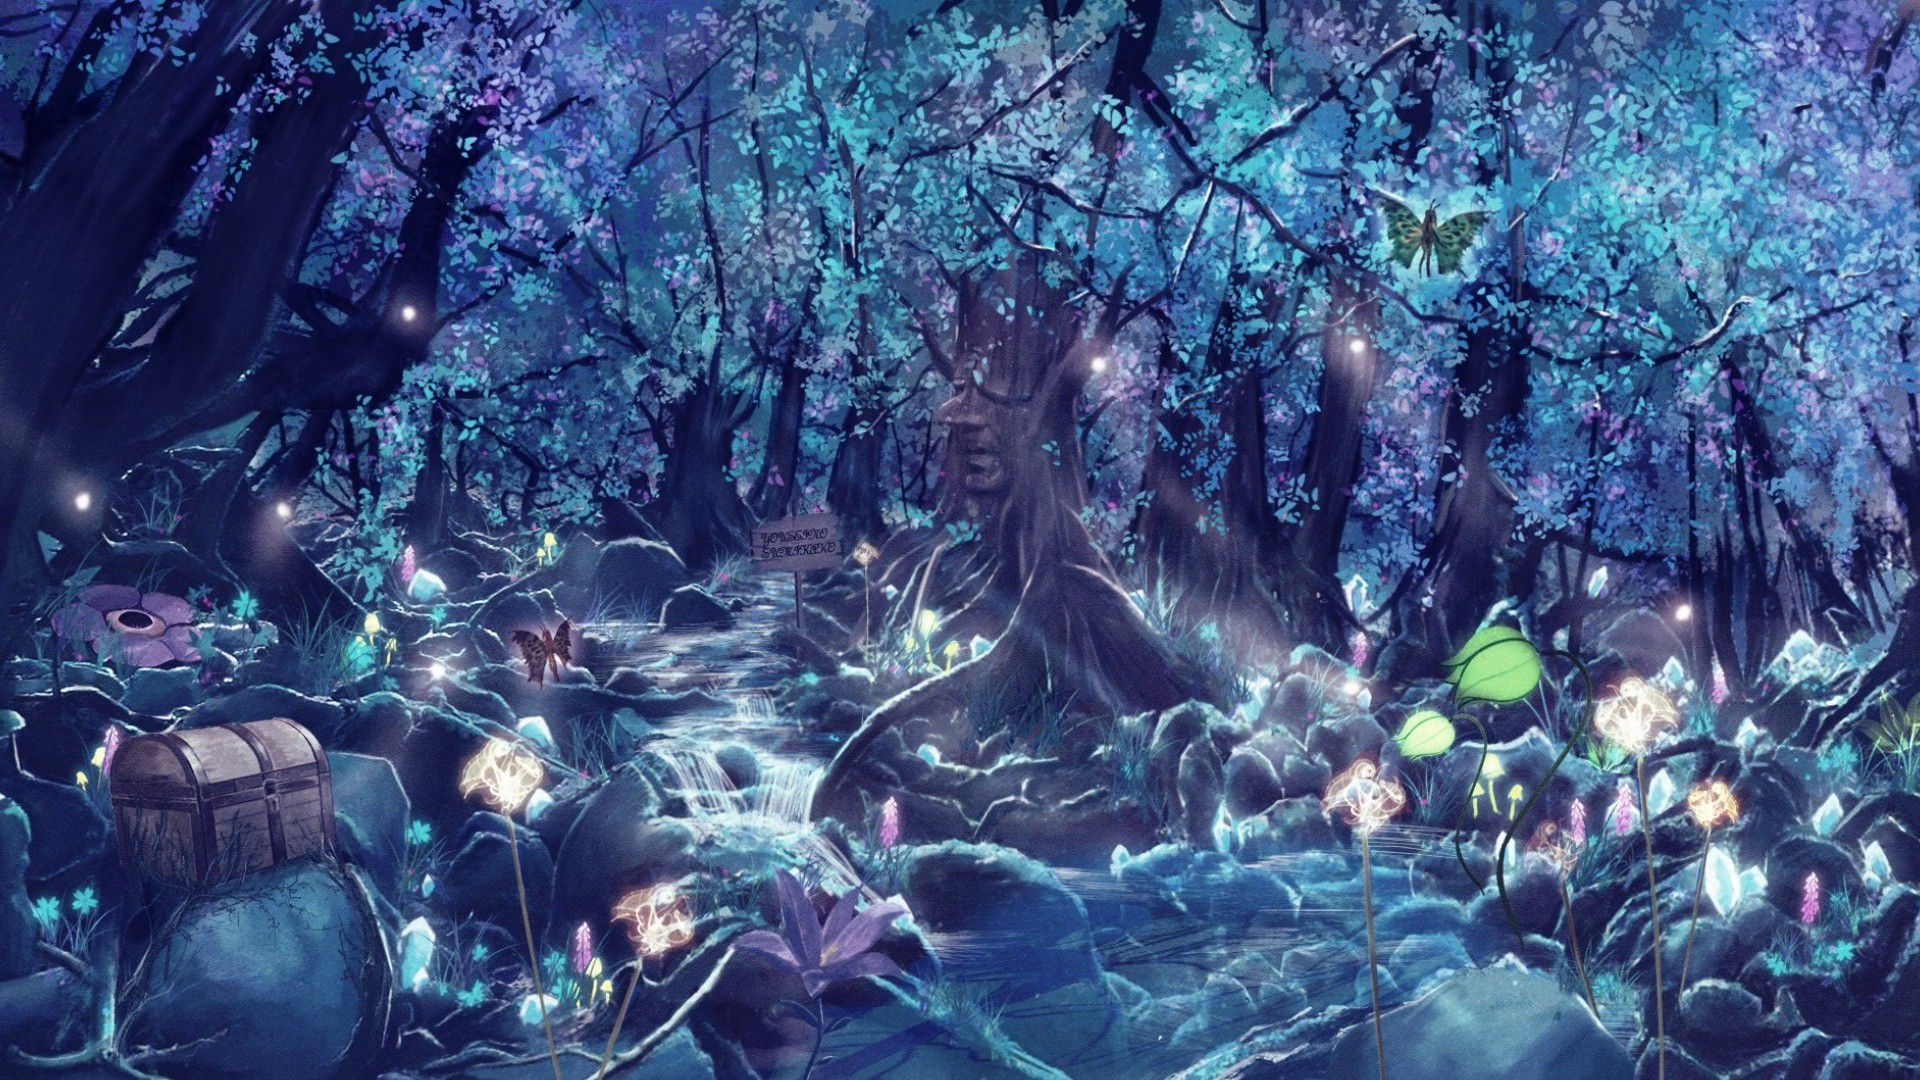 Highschool Of Demons Priests Book 1 Children Of Light And Shadows Magical Art Magical Forest World Wallpaper